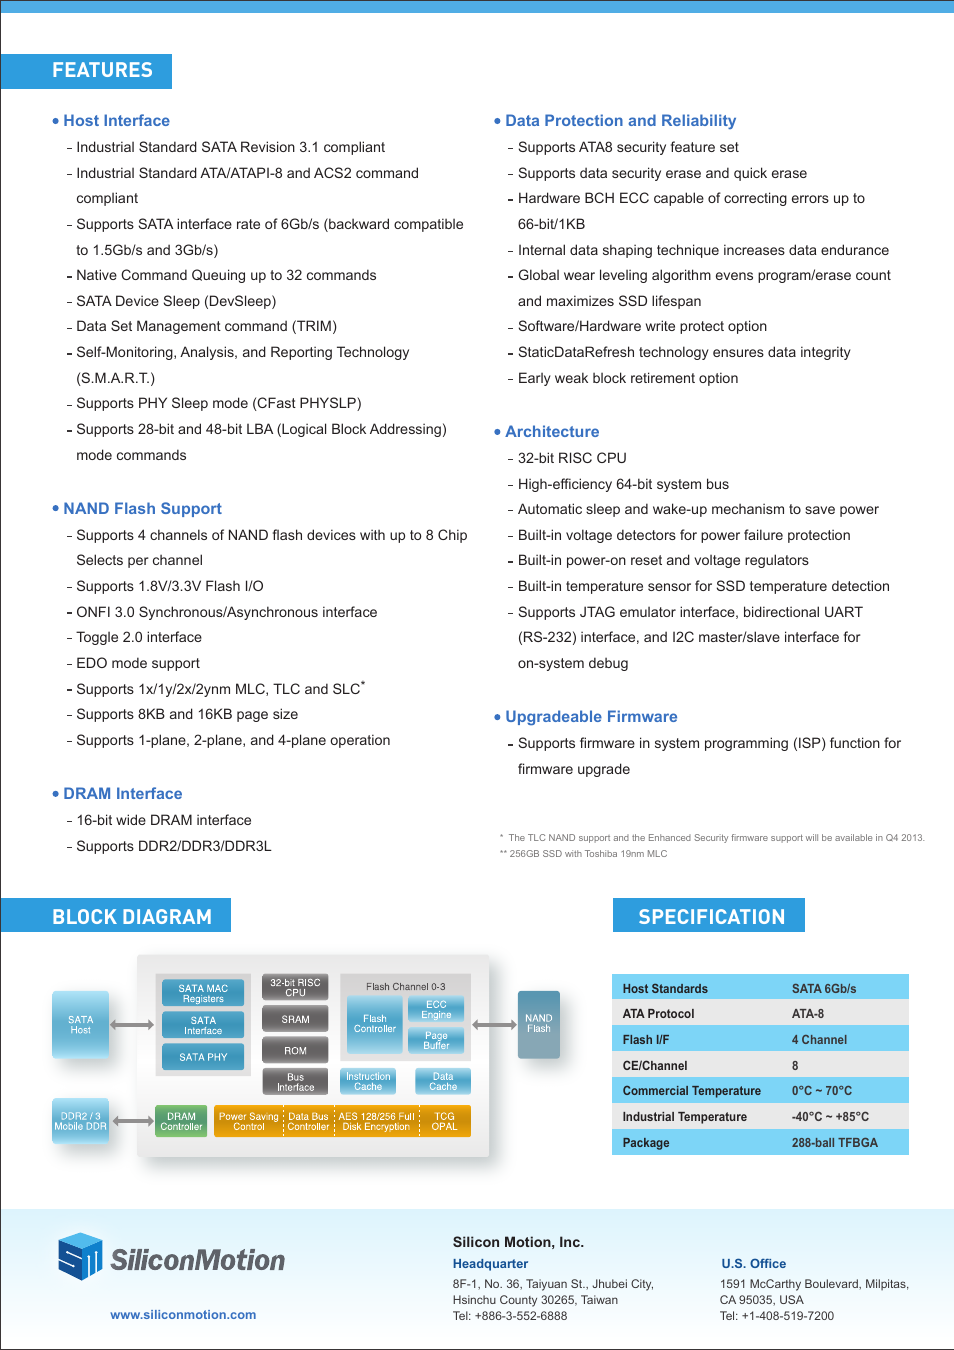 Block diagram specification, Features | Silicon Motion